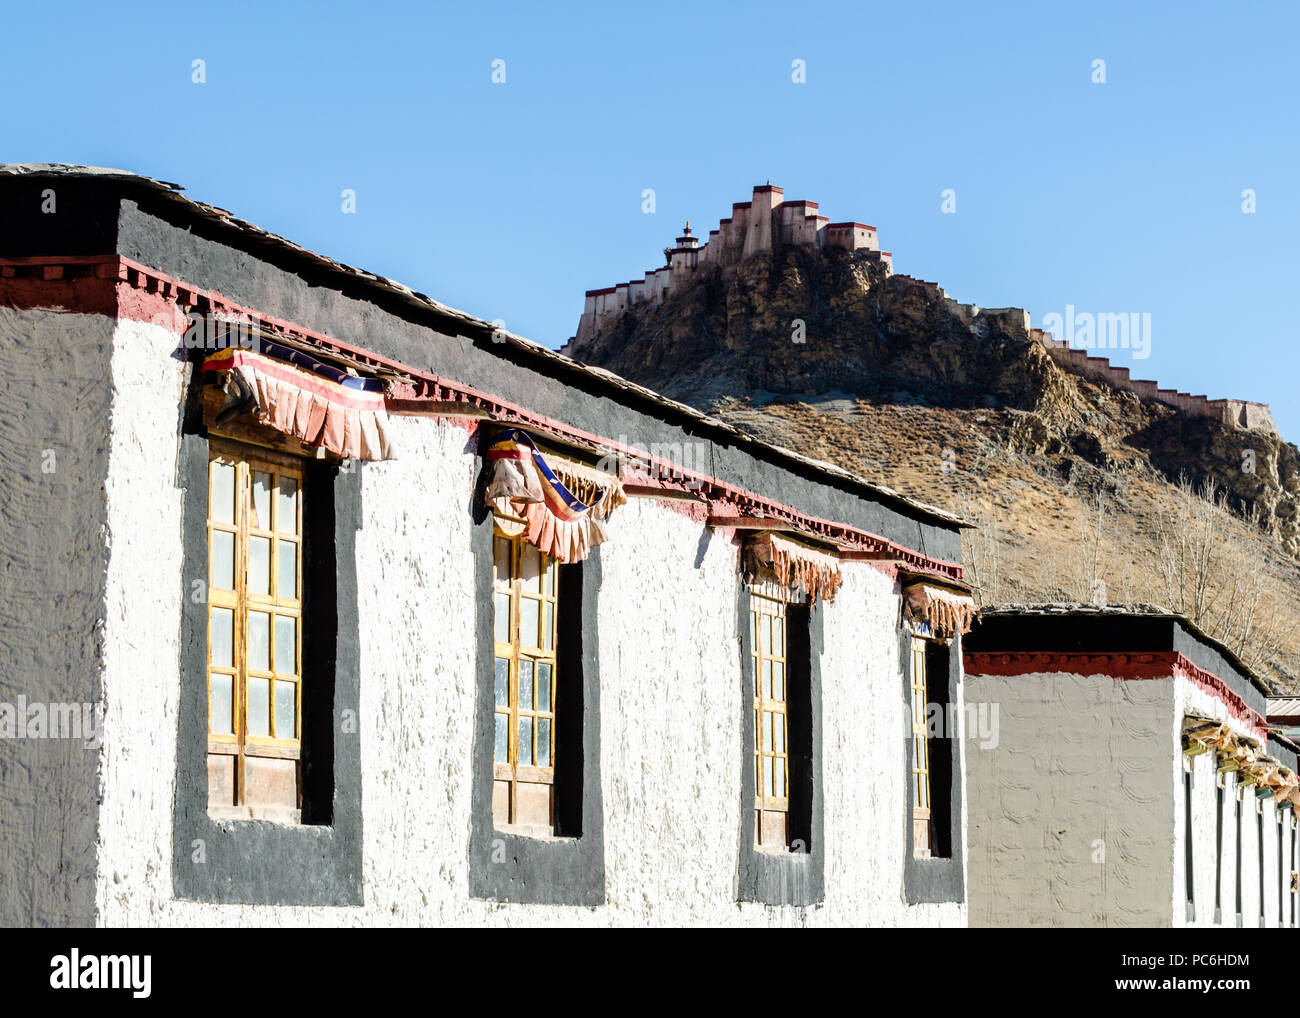 Gyantse Dzong or Gyantse fort, Tibet Stock Photo